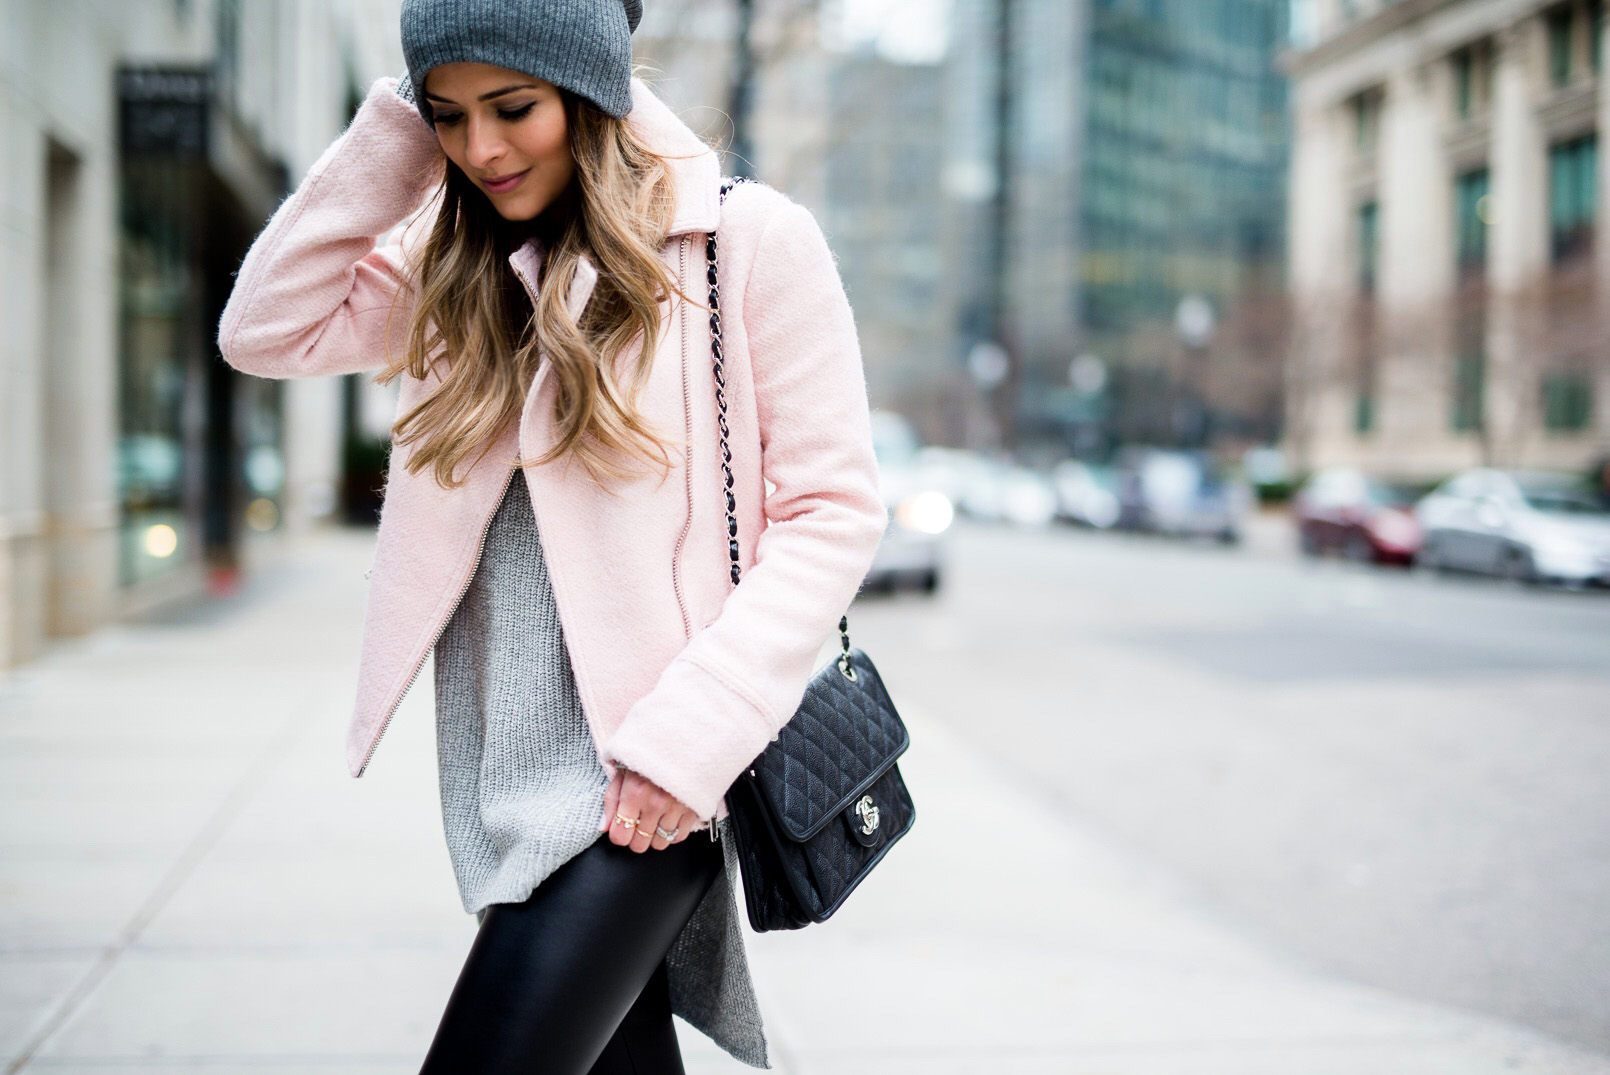 Asos-Pink-Jacket-Faux-Leather-Leggings-Reiss-Boots-BP-Grey-Beanie-Chanel-French-Riviera-Flap-Grey-Sweater-Boston-7